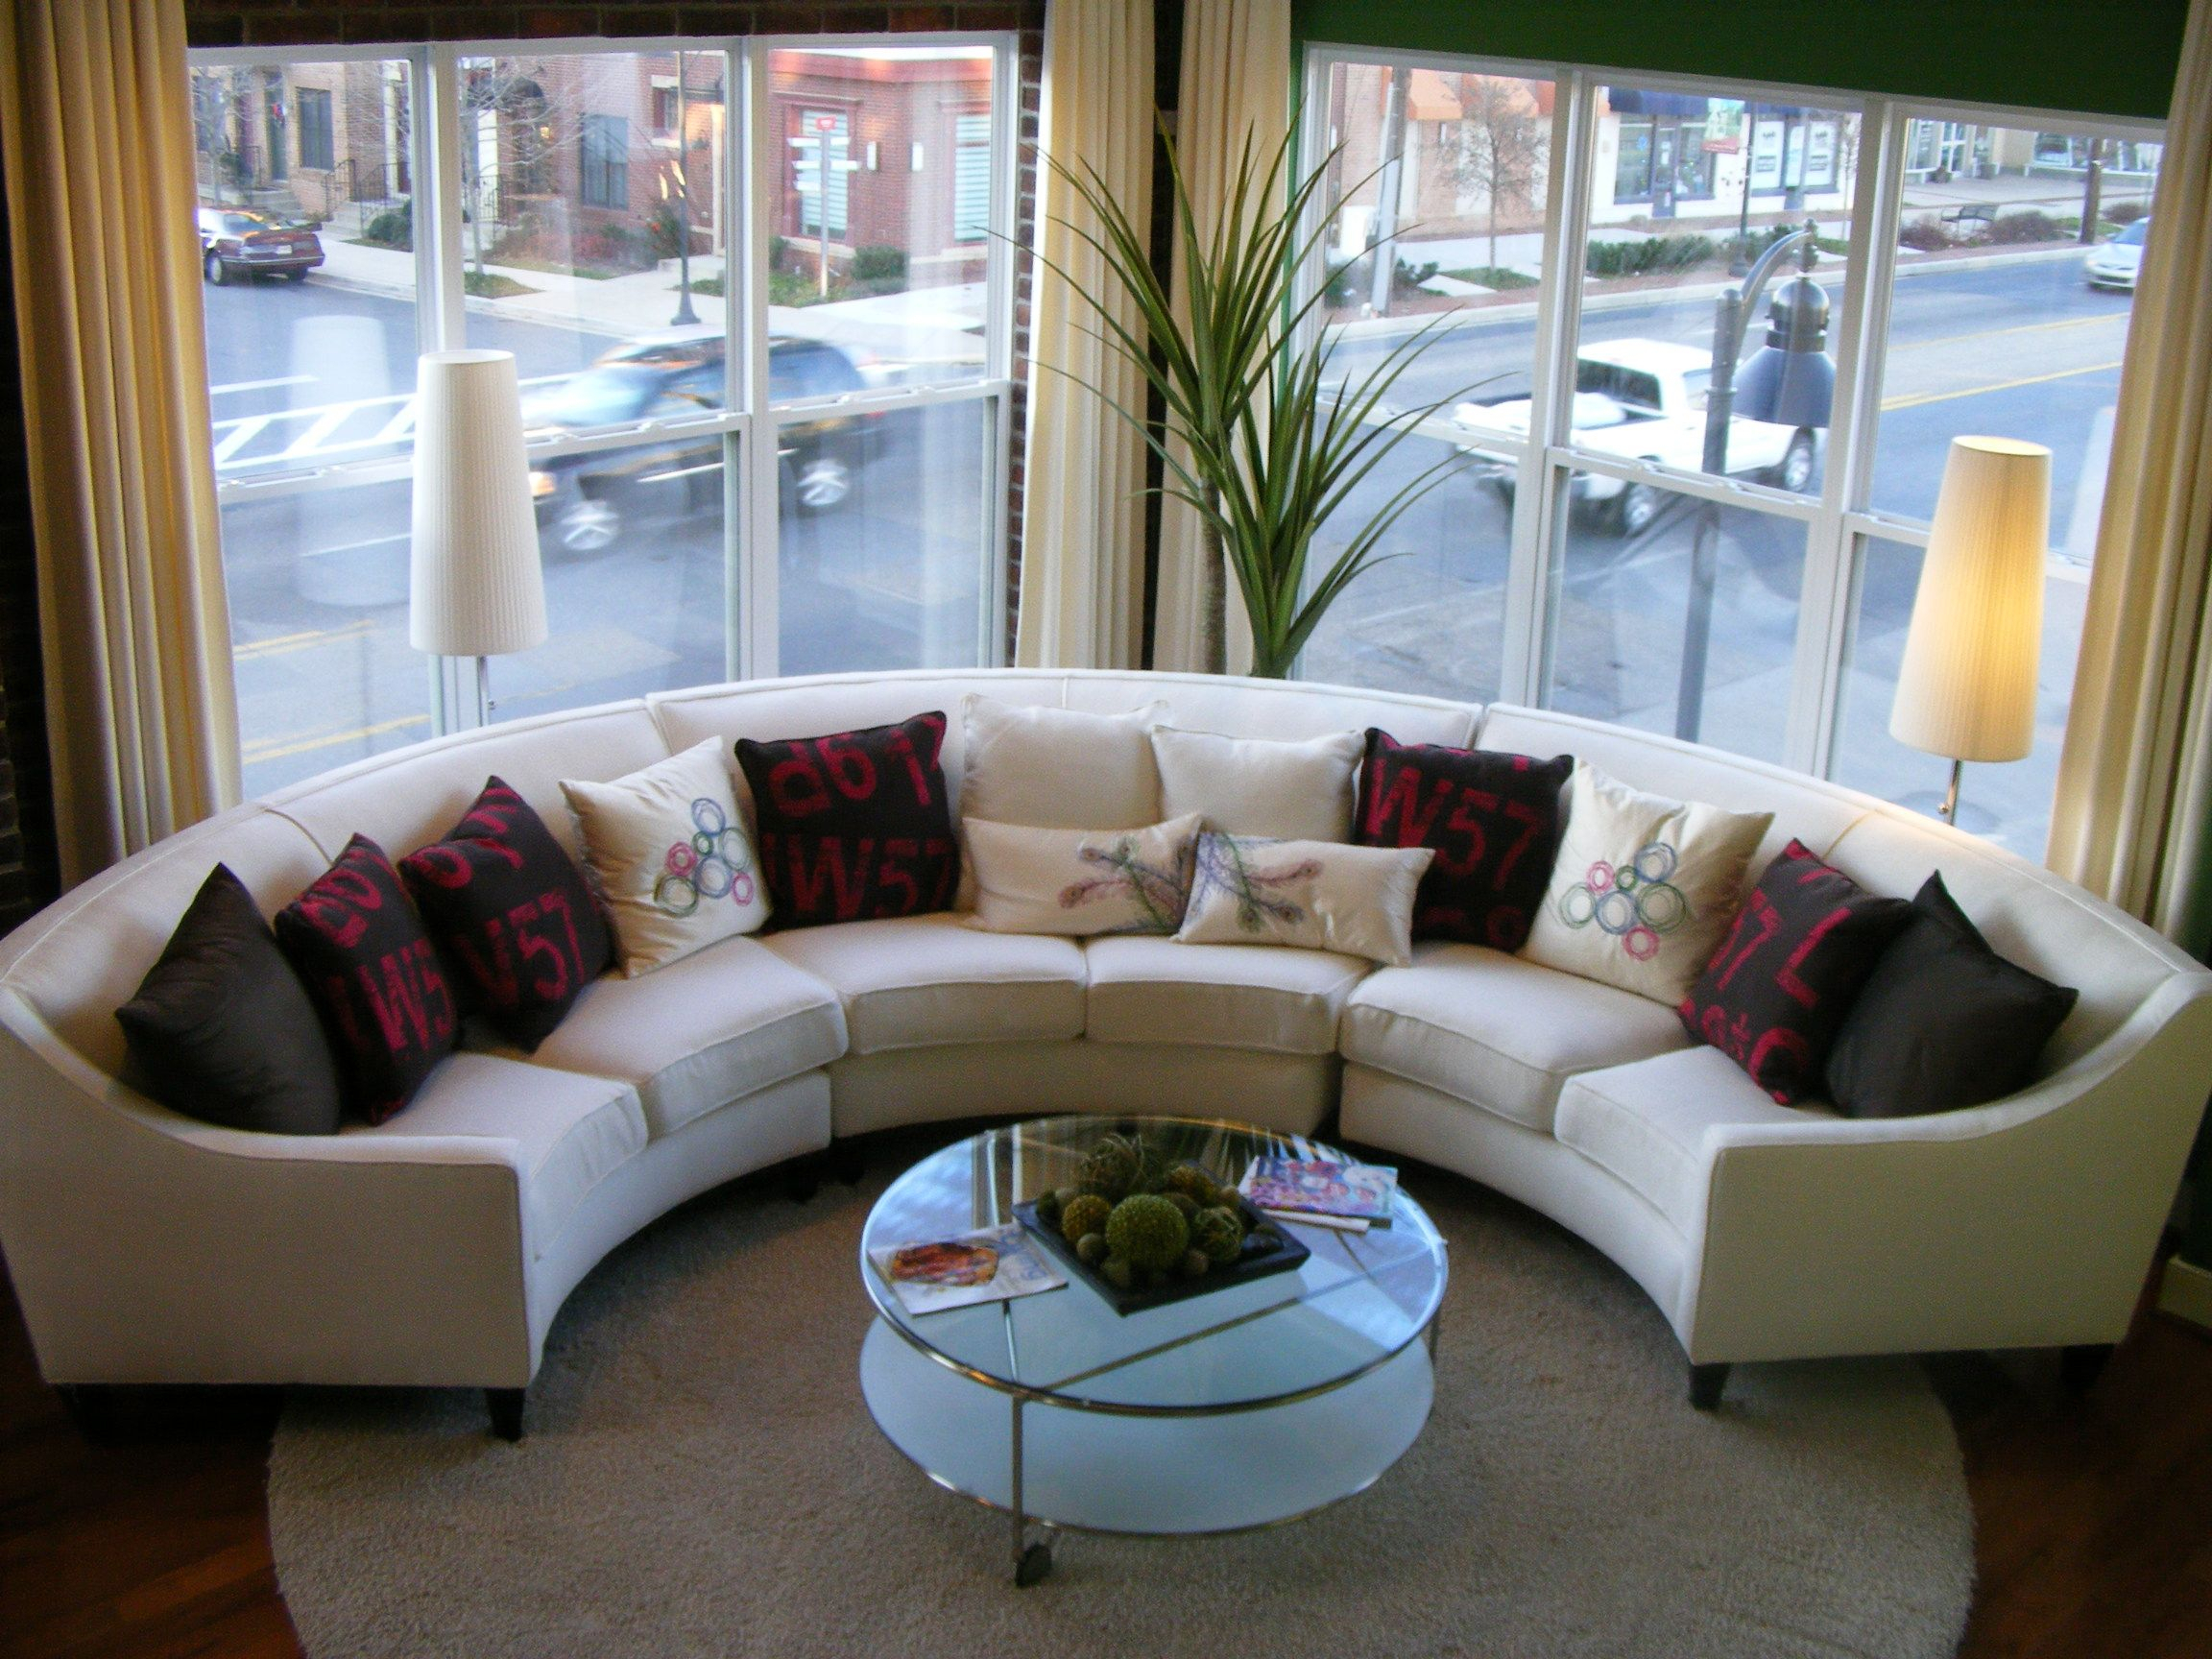 Round Sofas Furniture White Leather Sectional Sofa Fancy Pertaining To Circular Sofa Chairs (View 10 of 15)